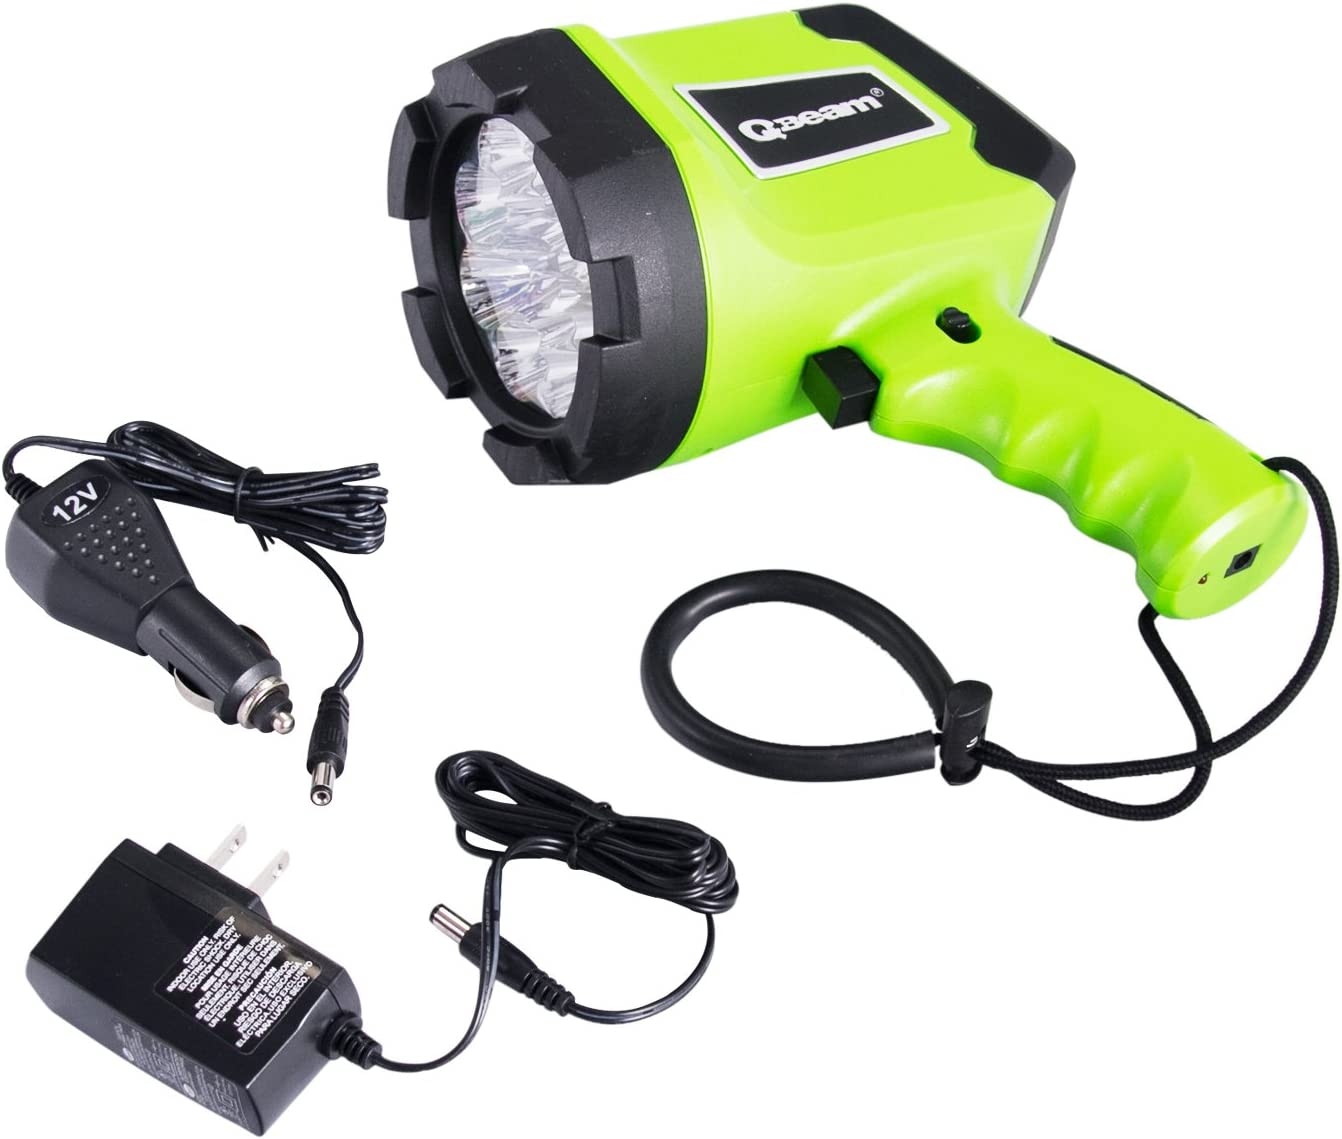 12 LED Spotlight Offroad Automotive//Garage //Emergency// Boating//Fishing//Hunting//Camping//Hiking//Patrolling 800-2701-1 Brinkmann Qbeam LED Rechargeable Spotlight